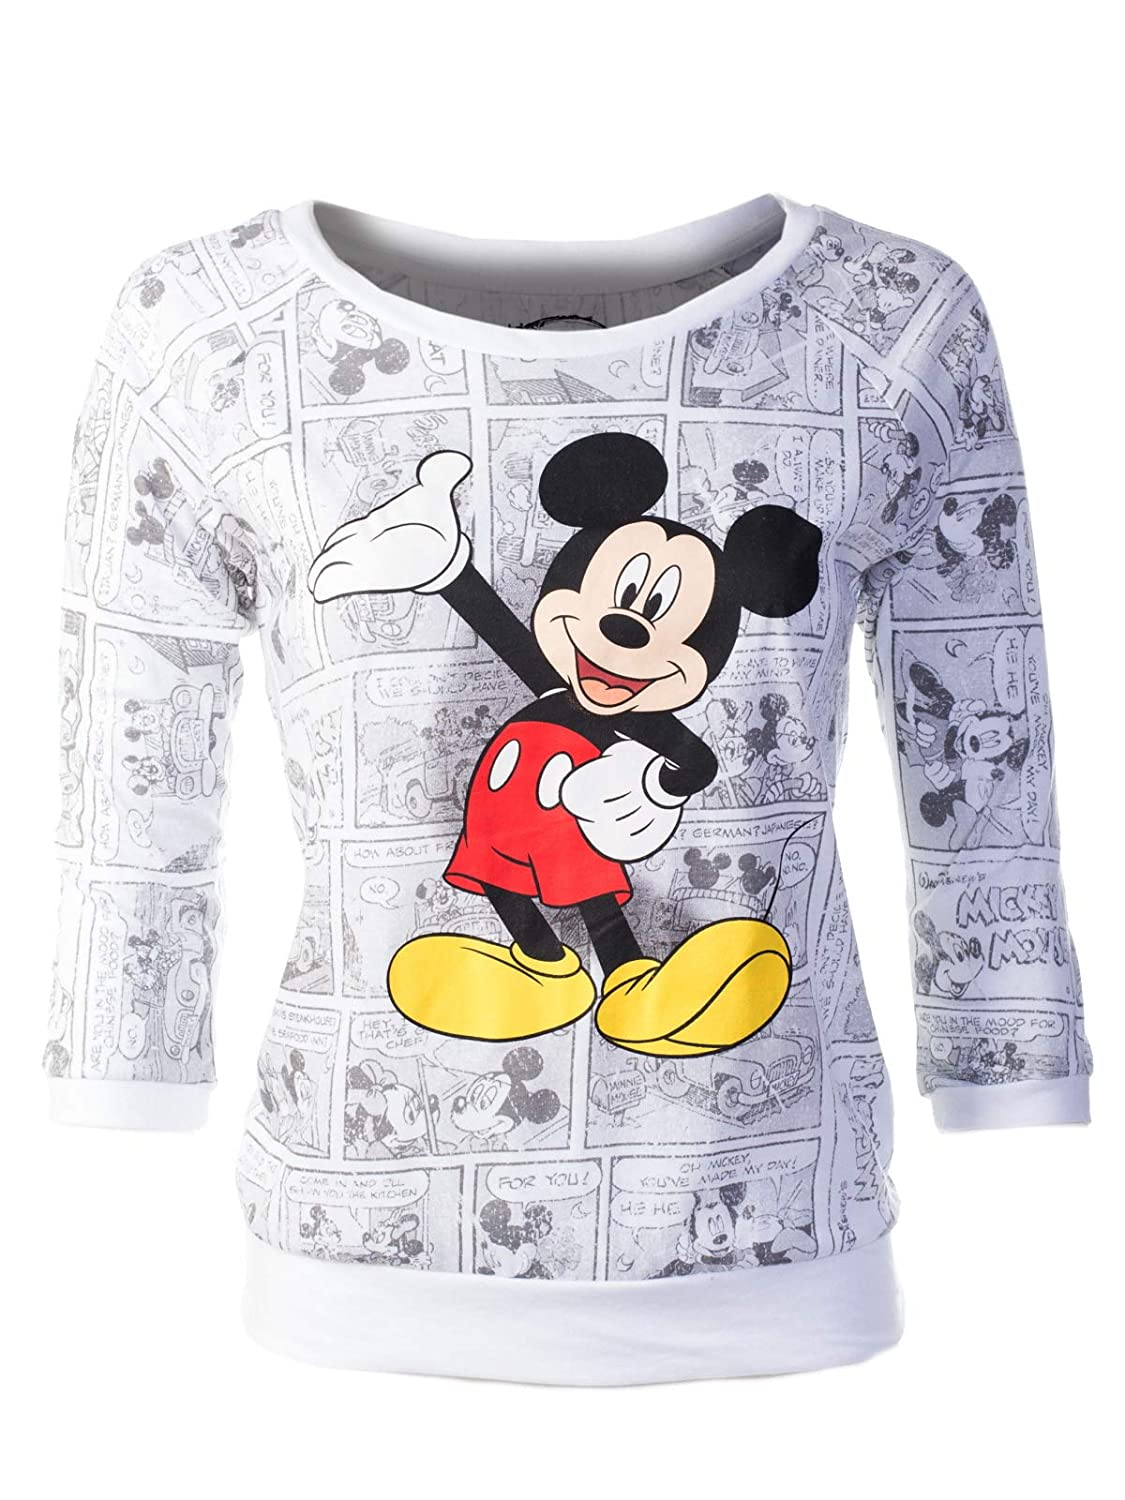 Iptw006 White Instar Mode Women's Round Neck TShirt Minnie Mouse Head Disney Most Orginal Shirts